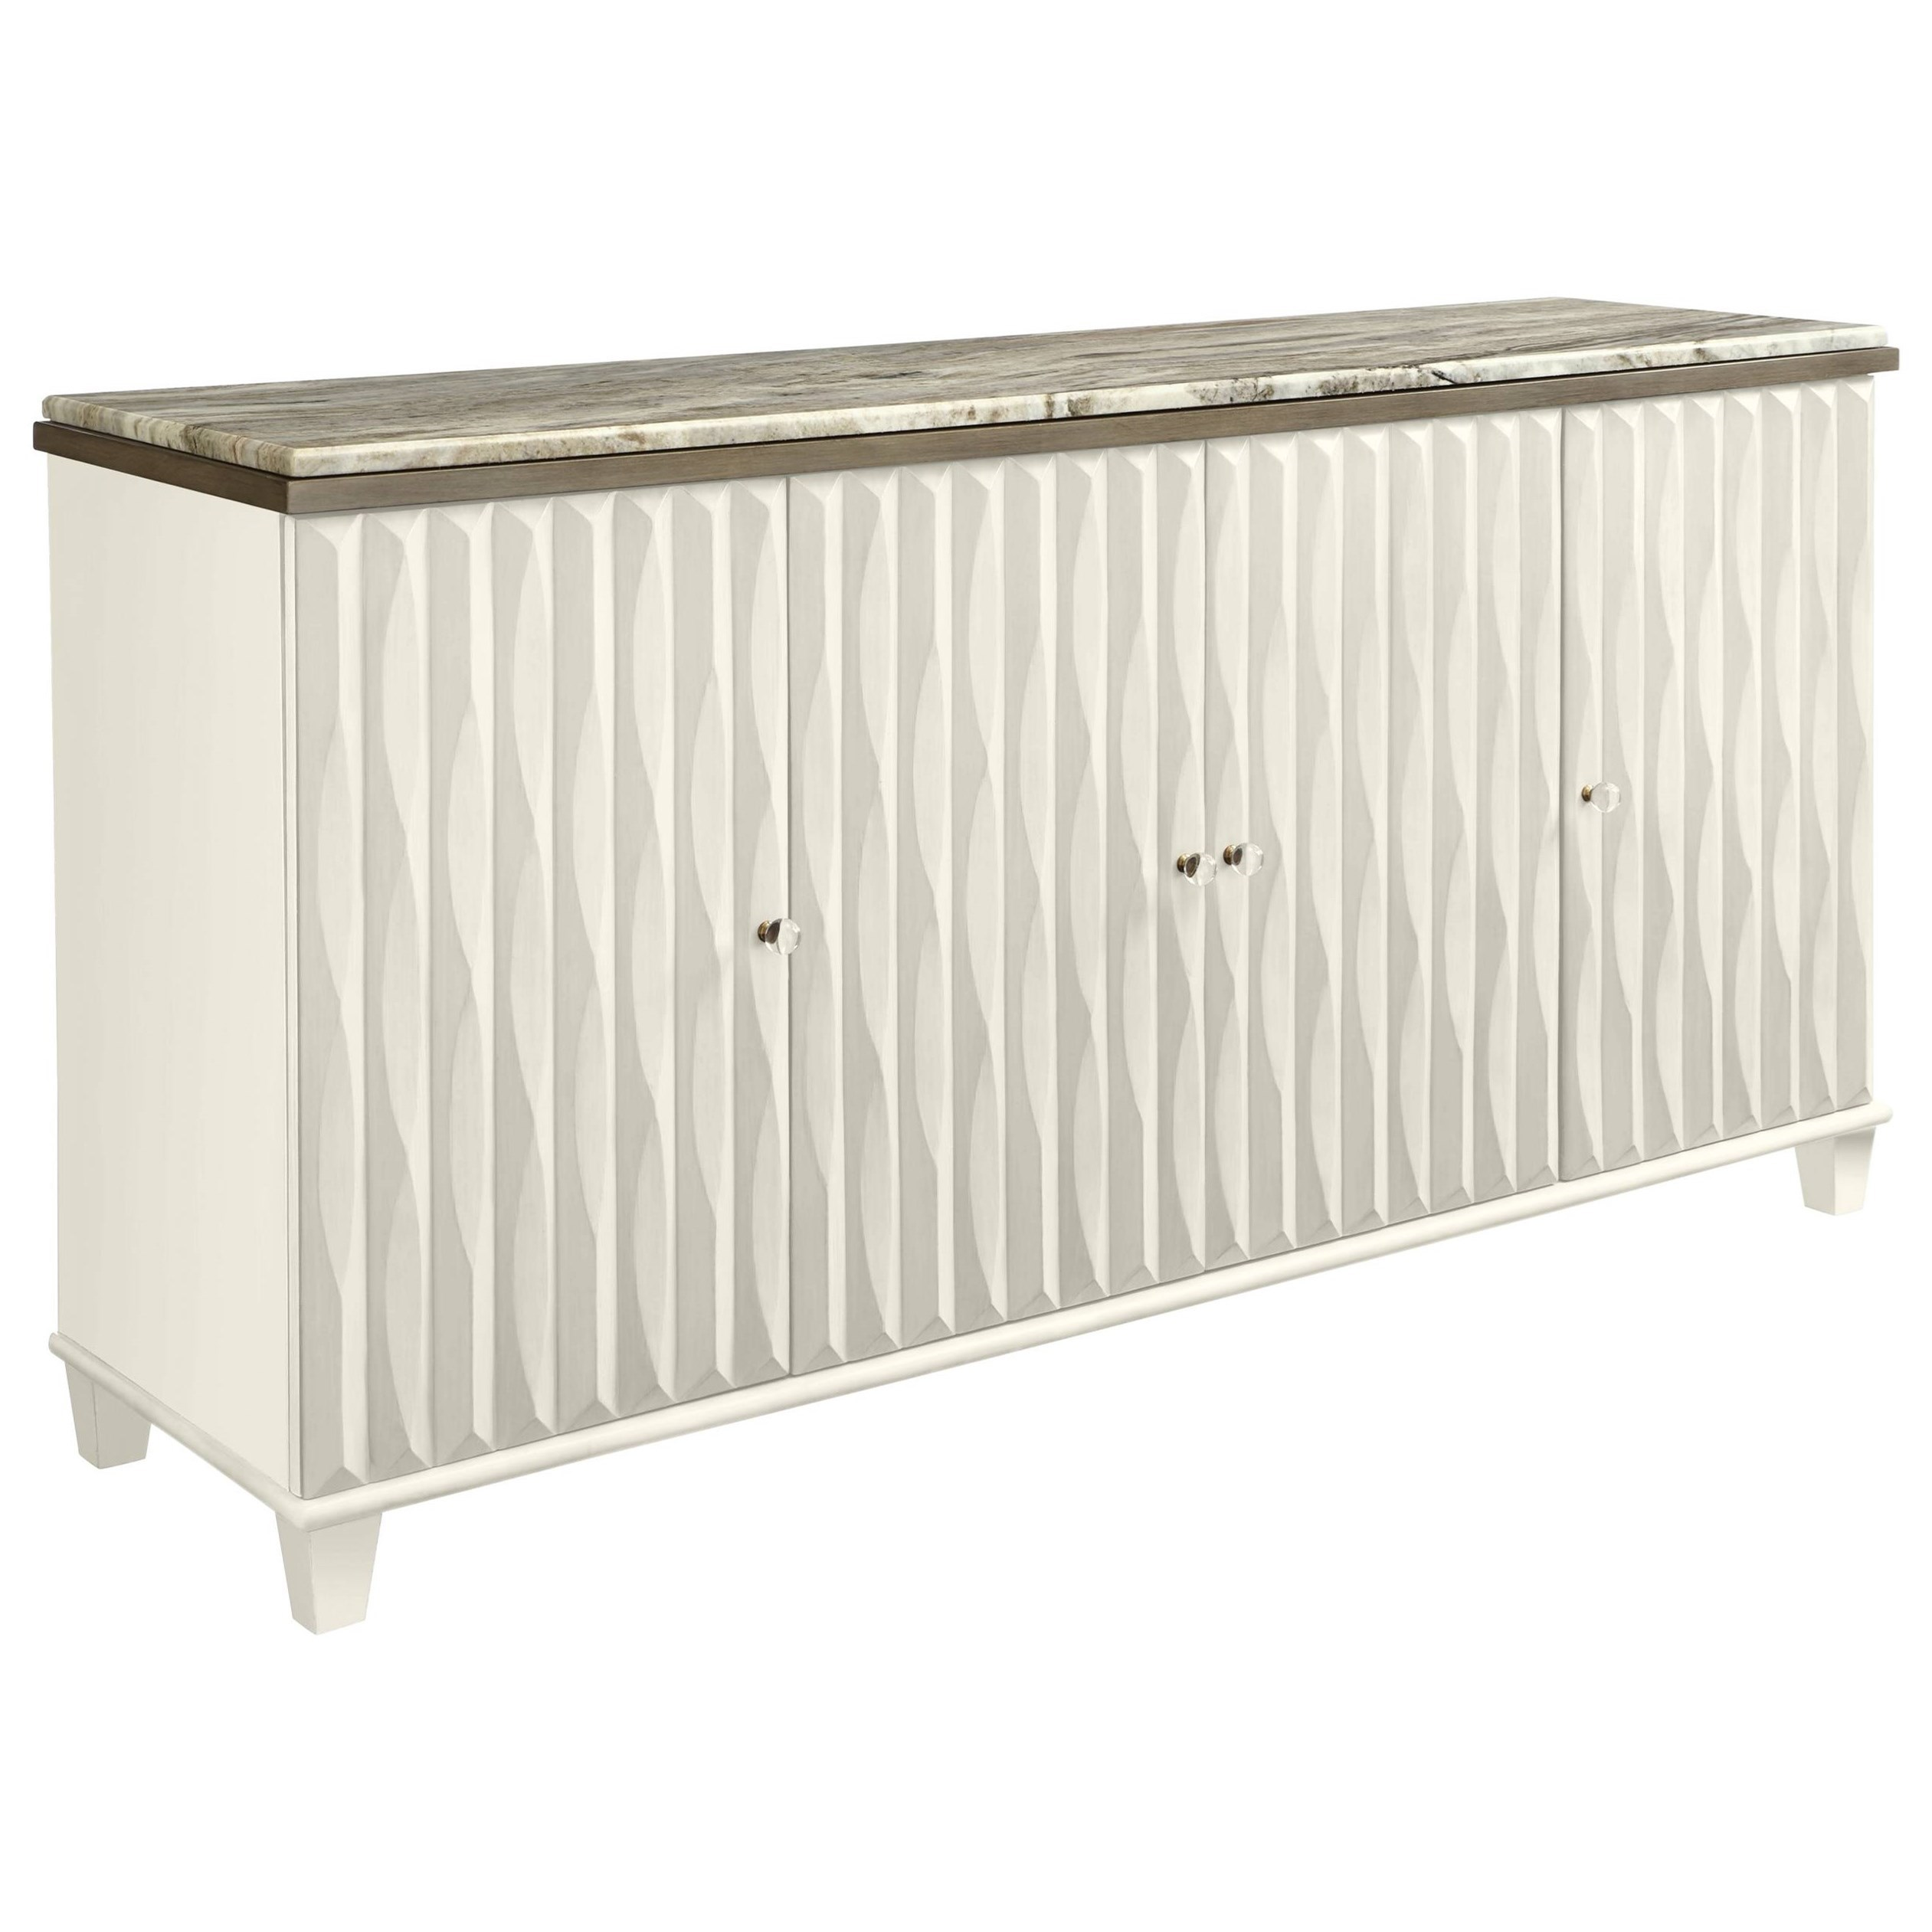 Stanley Furniture Coastal Living Oasis Tides Buffet with Lay-On Granite Top - Item Number: 527-21-05+71-105